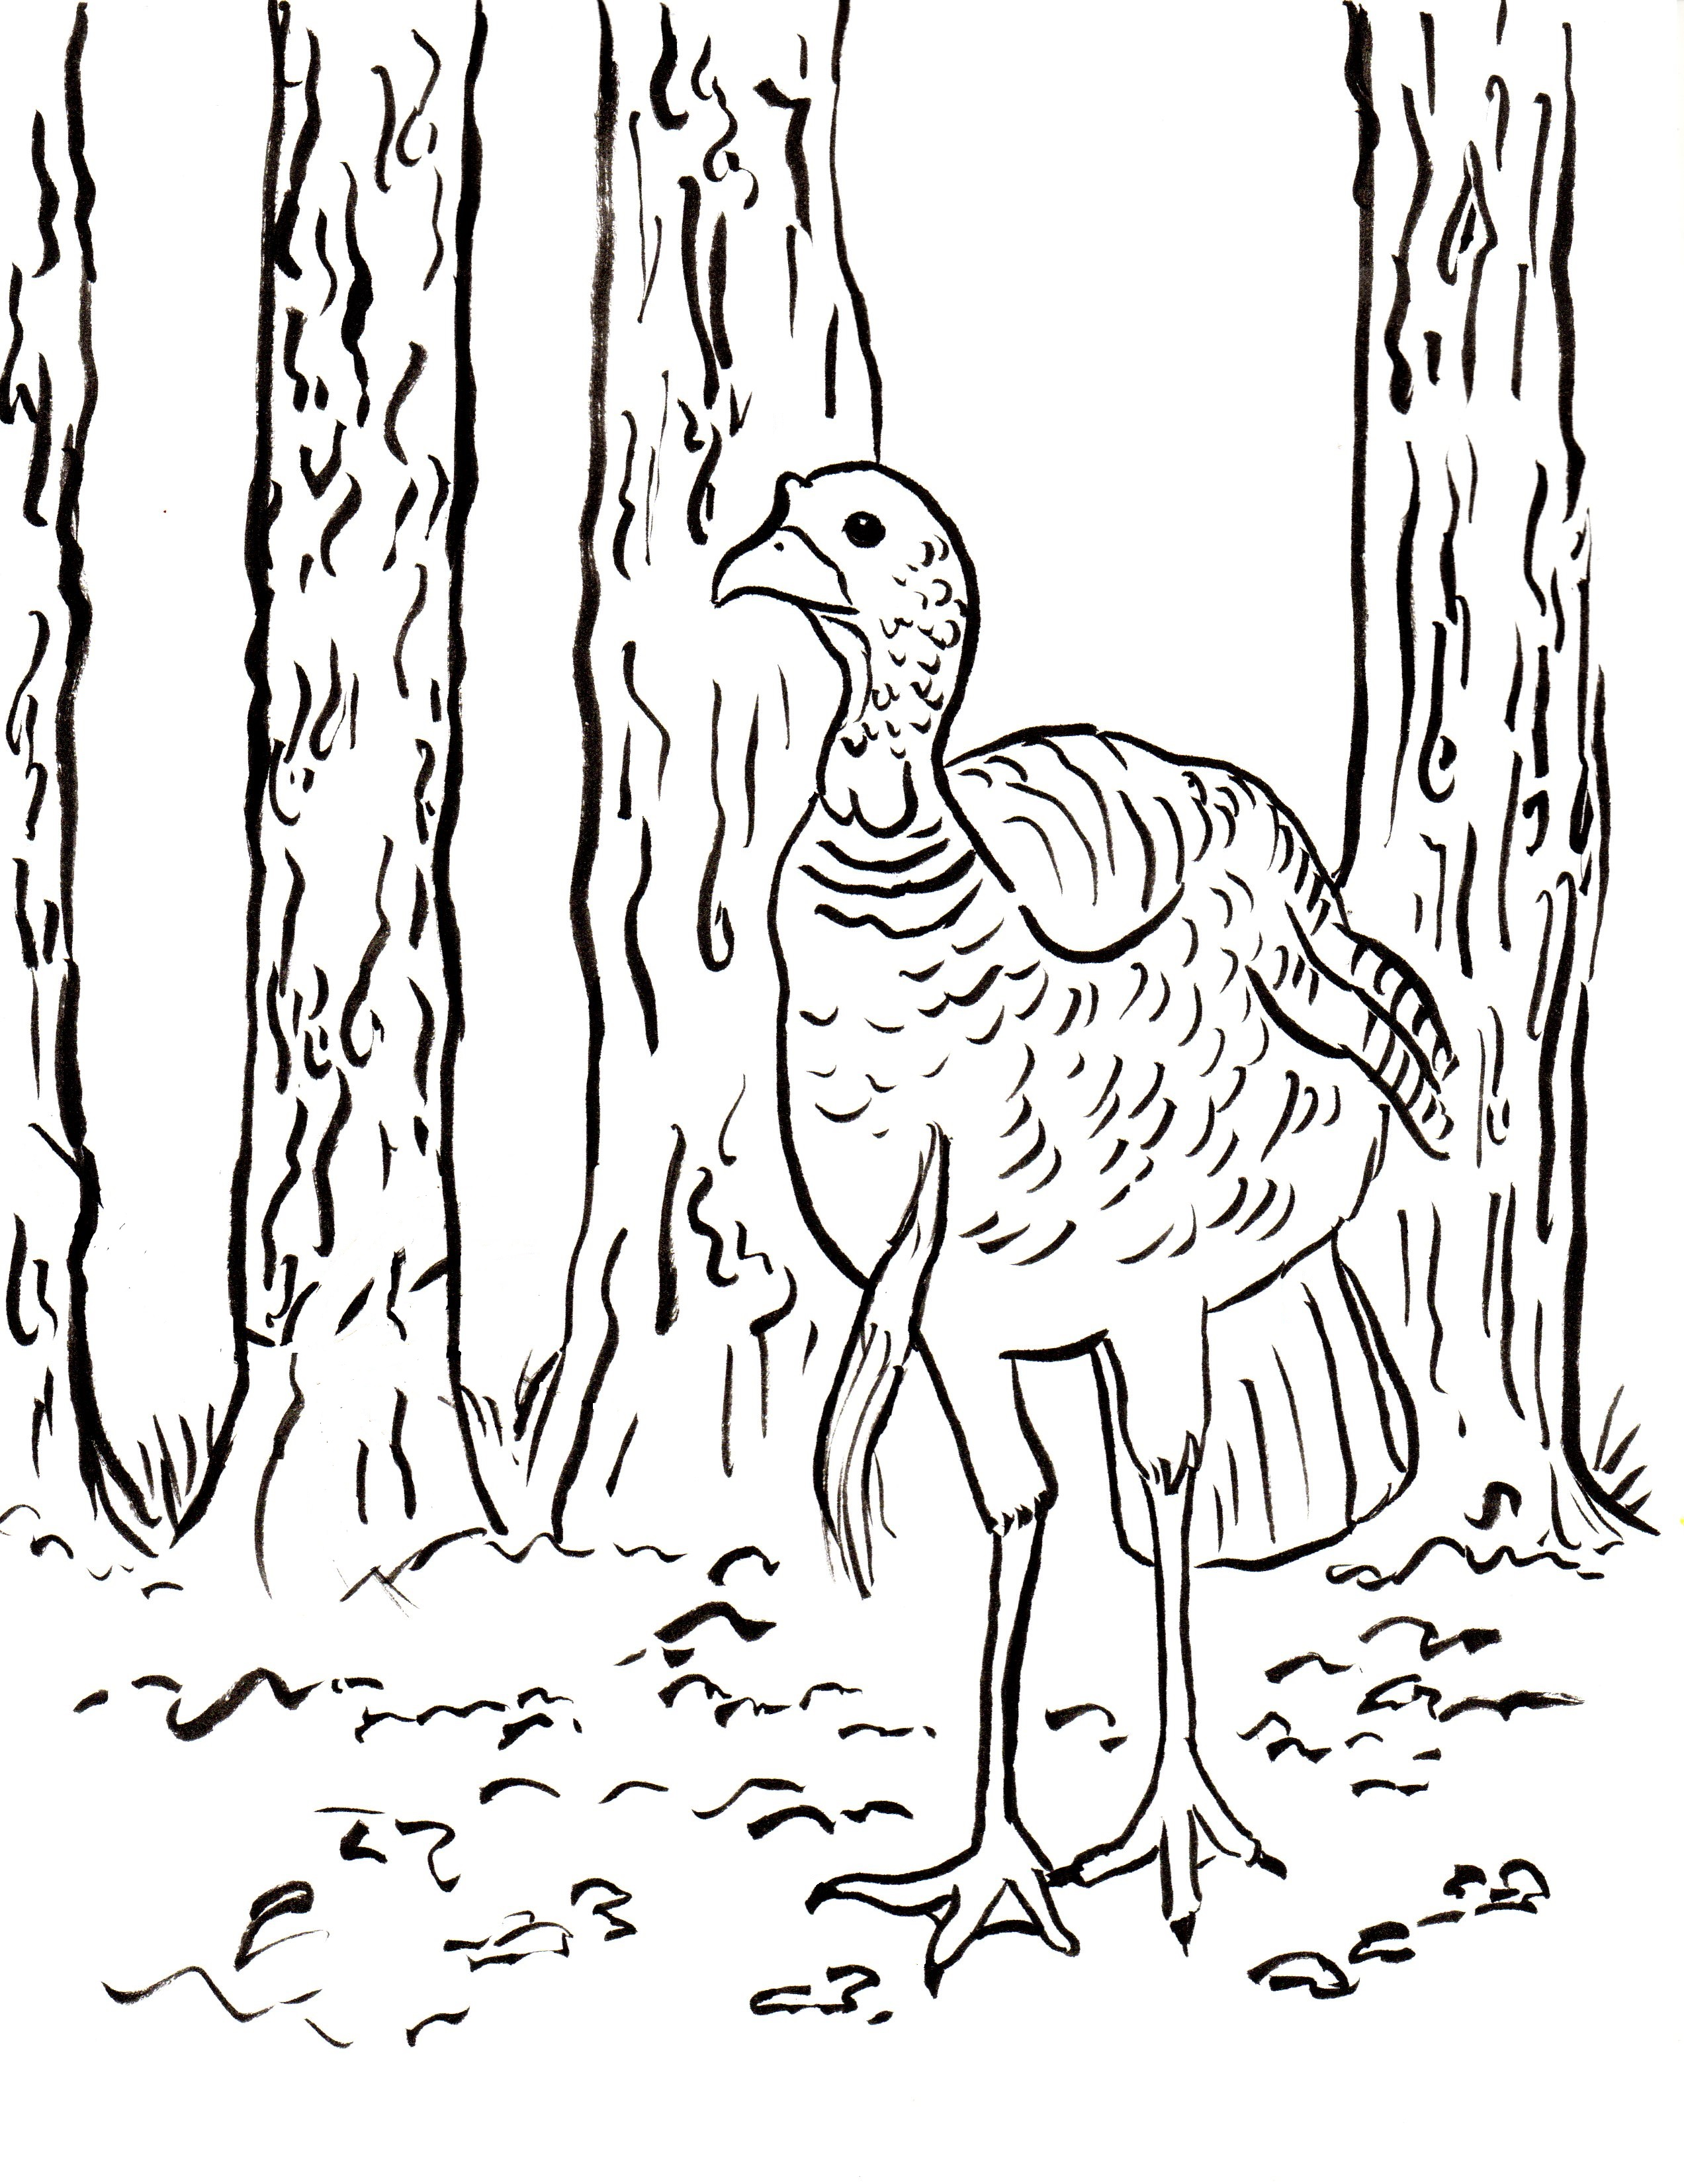 Turkey coloring page | Free Printable Coloring Pages | 3300x2545